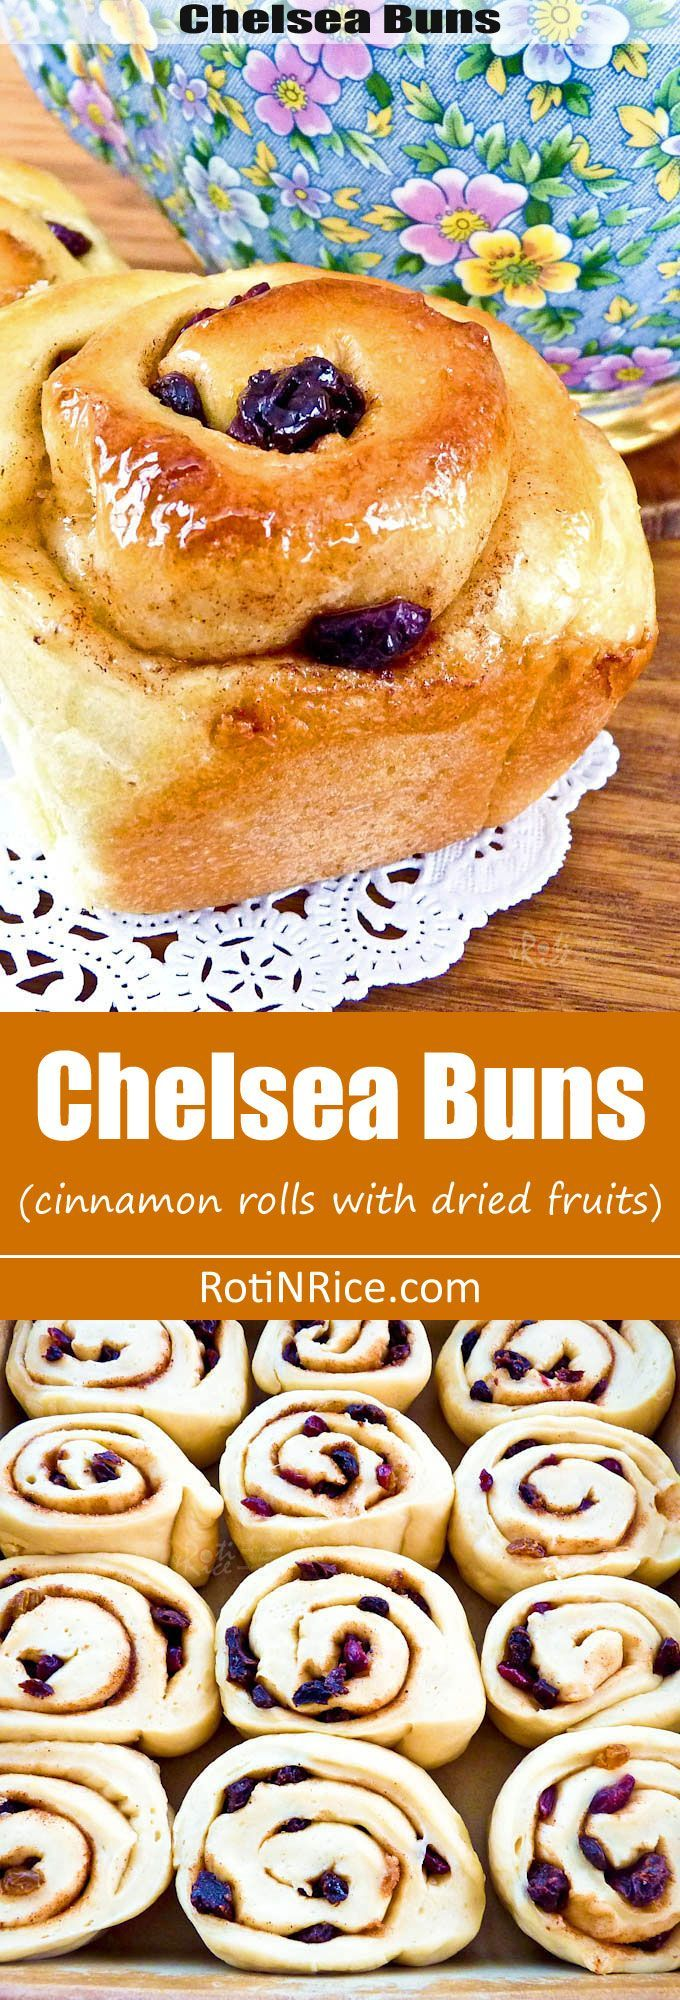 Sweet and sticky Chelsea Buns filled with a mix of spices, raisins, and cranberries. Delicious eaten warm fresh out of the oven. | http://RotiNRice.com